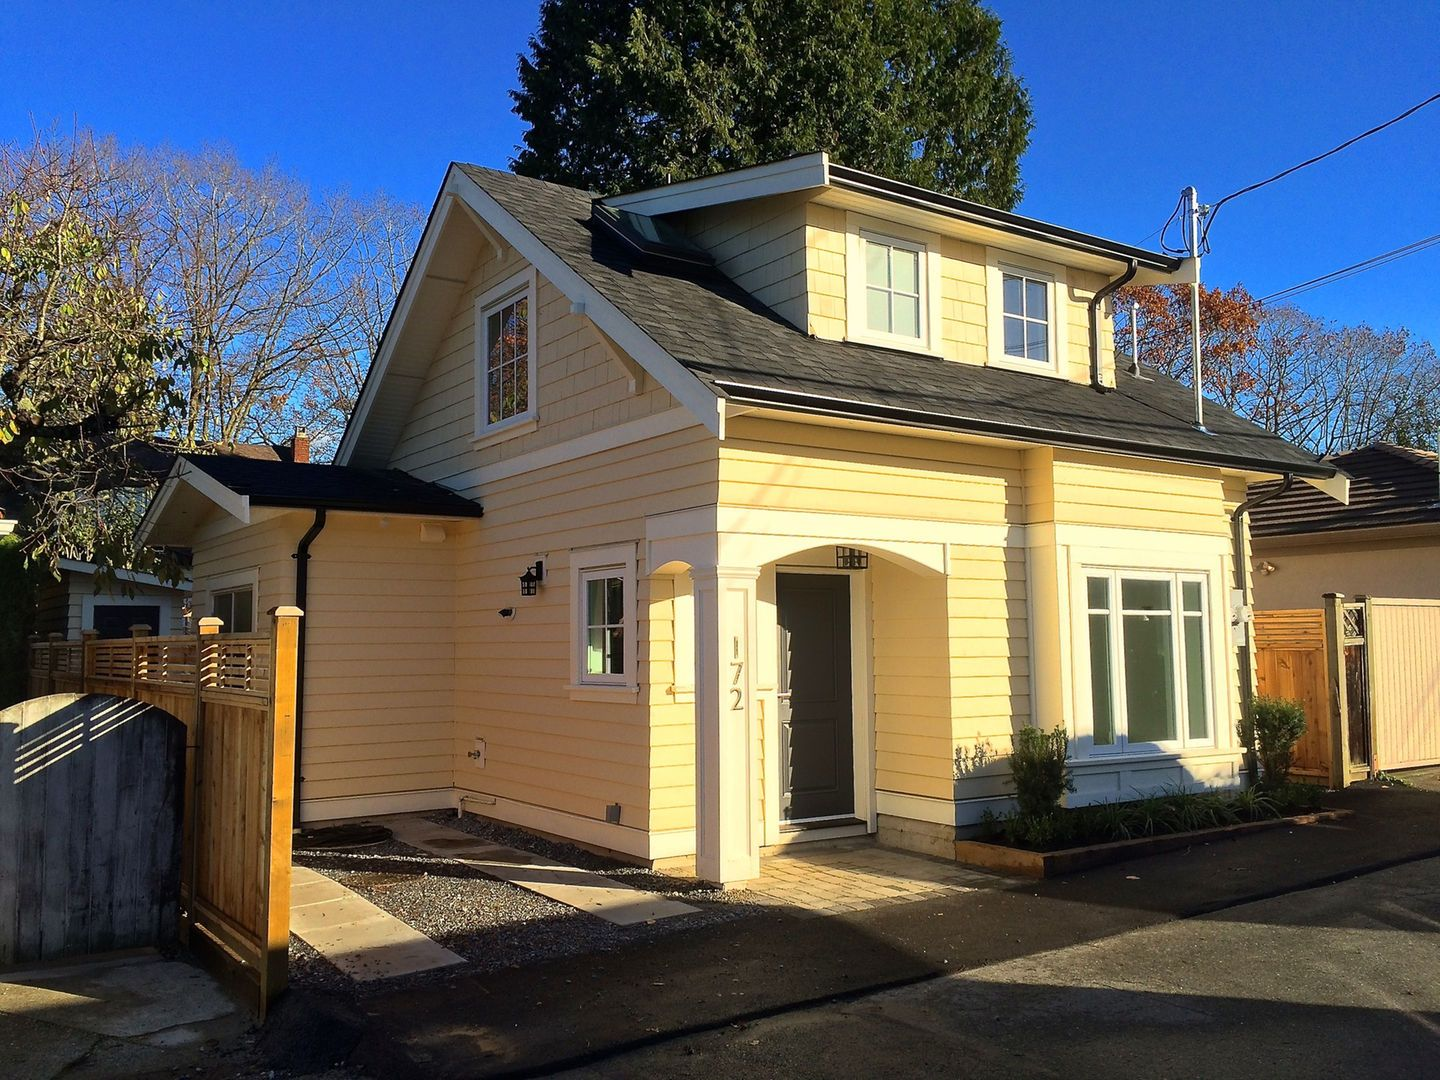 Buttercup laneway house in Vancouver | Backyard cottage ...